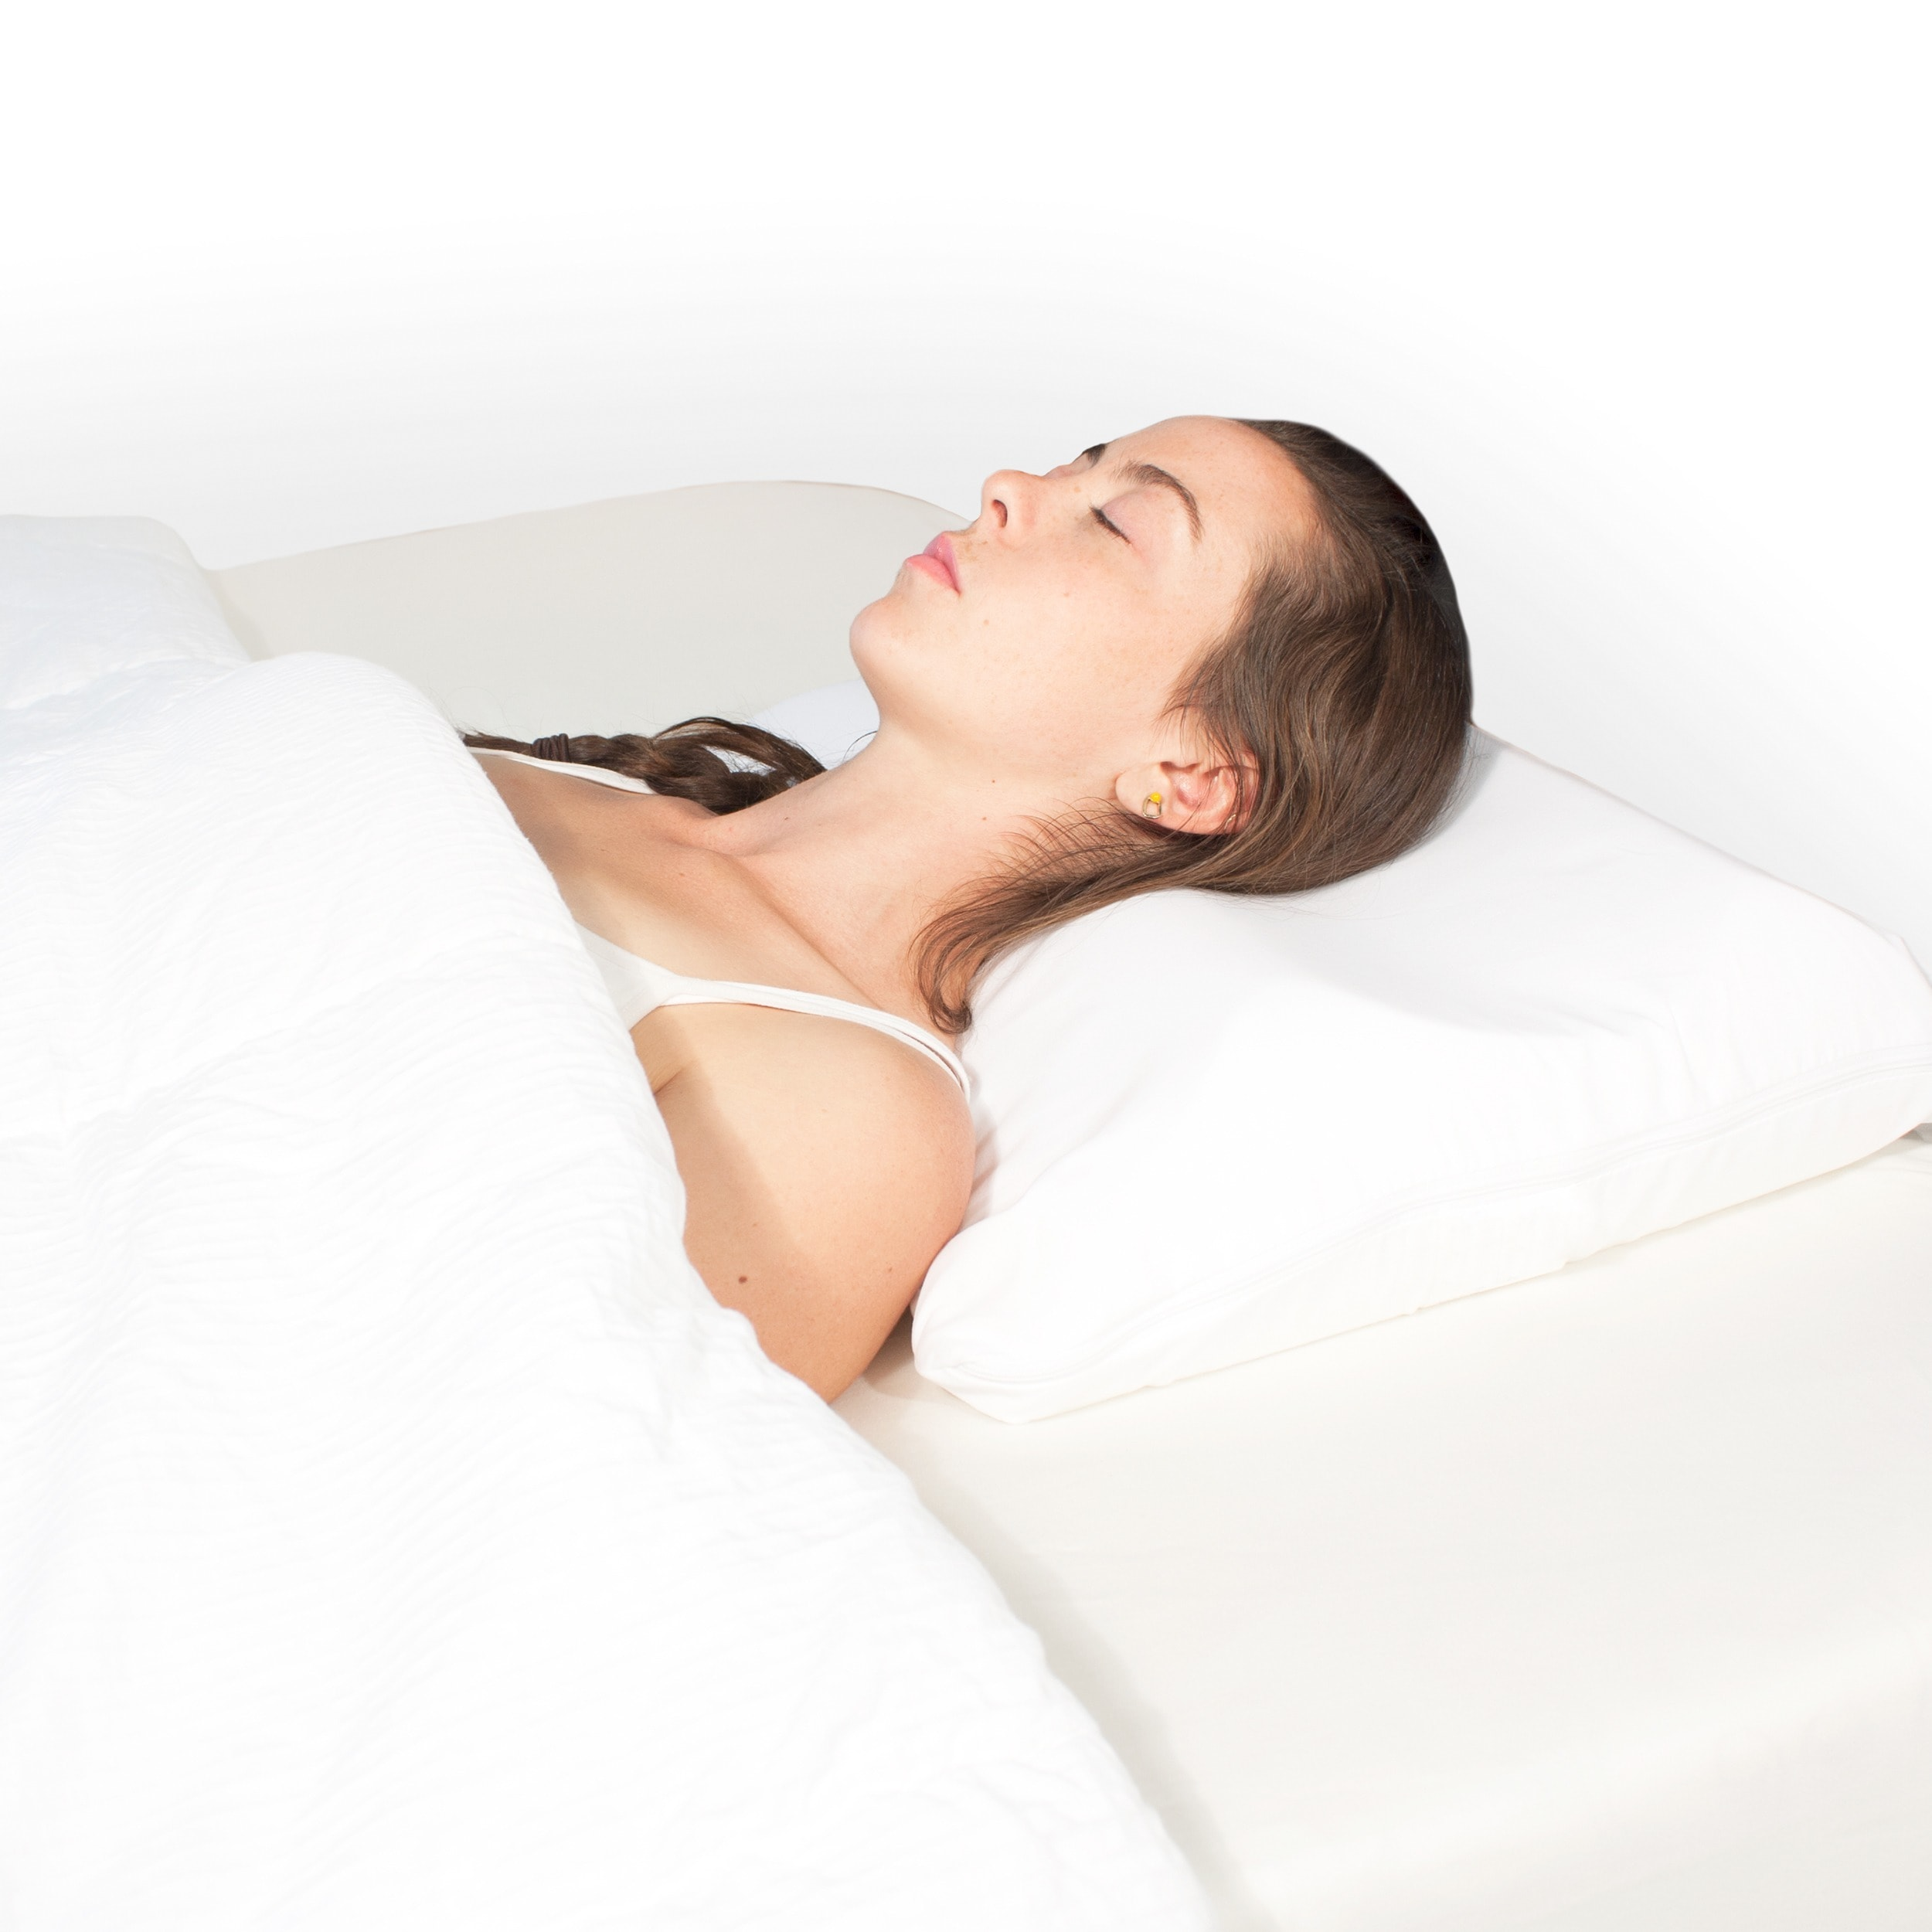 bath over snoring shaped hole bedding pillow only orders shipping u free sleeper side anti overstock ear product cover on